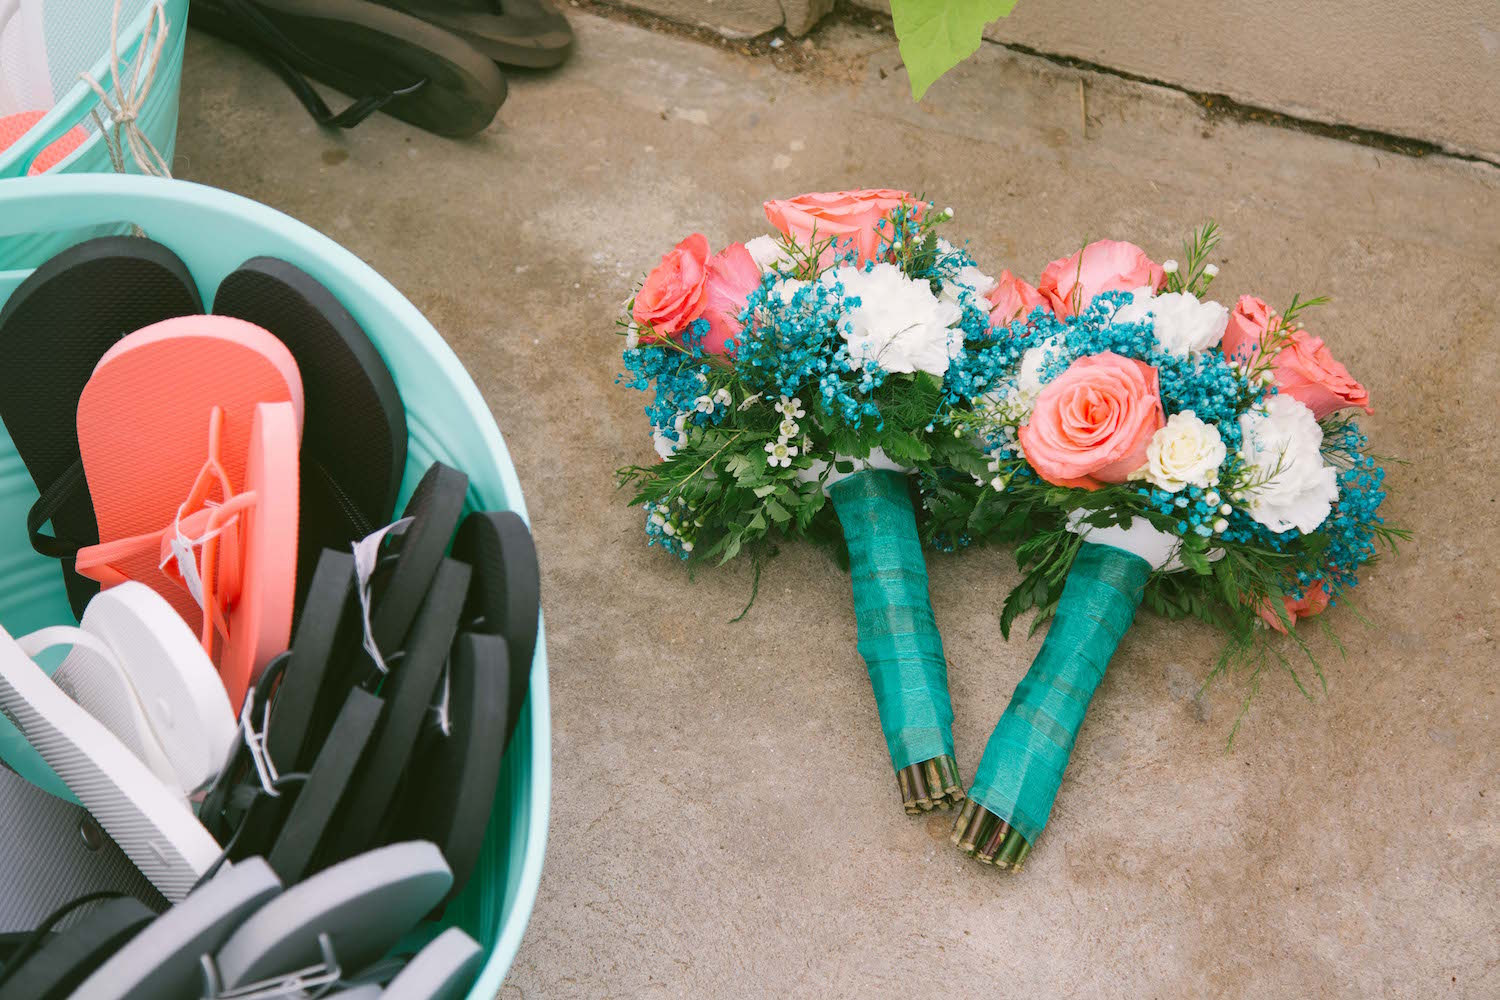 The details of this wedding were unbelievable. The bridesmaid bouquets even matched the sandal buckets!